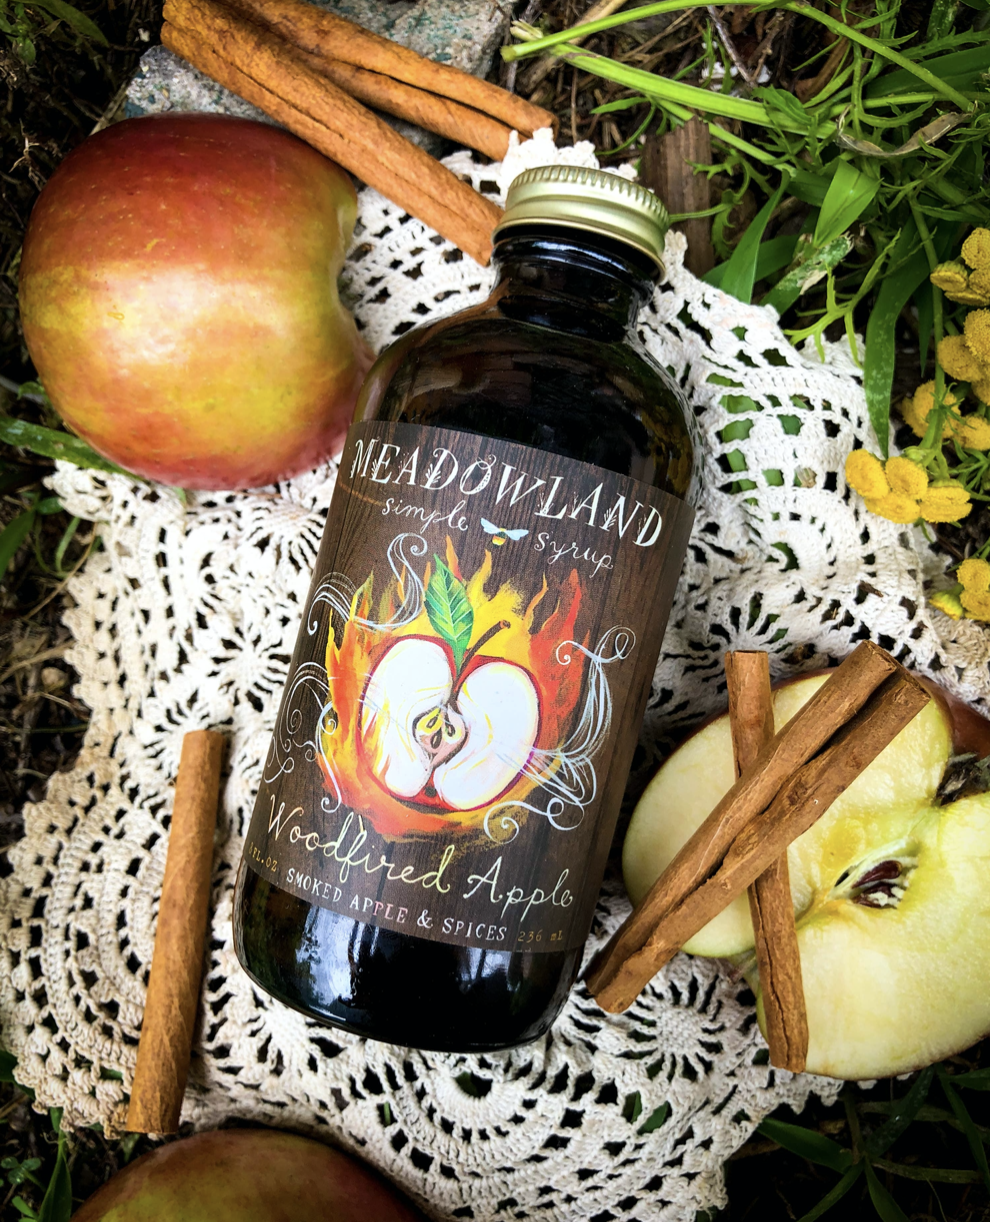 Woodfired Apple, Meadowland Simple Syrup